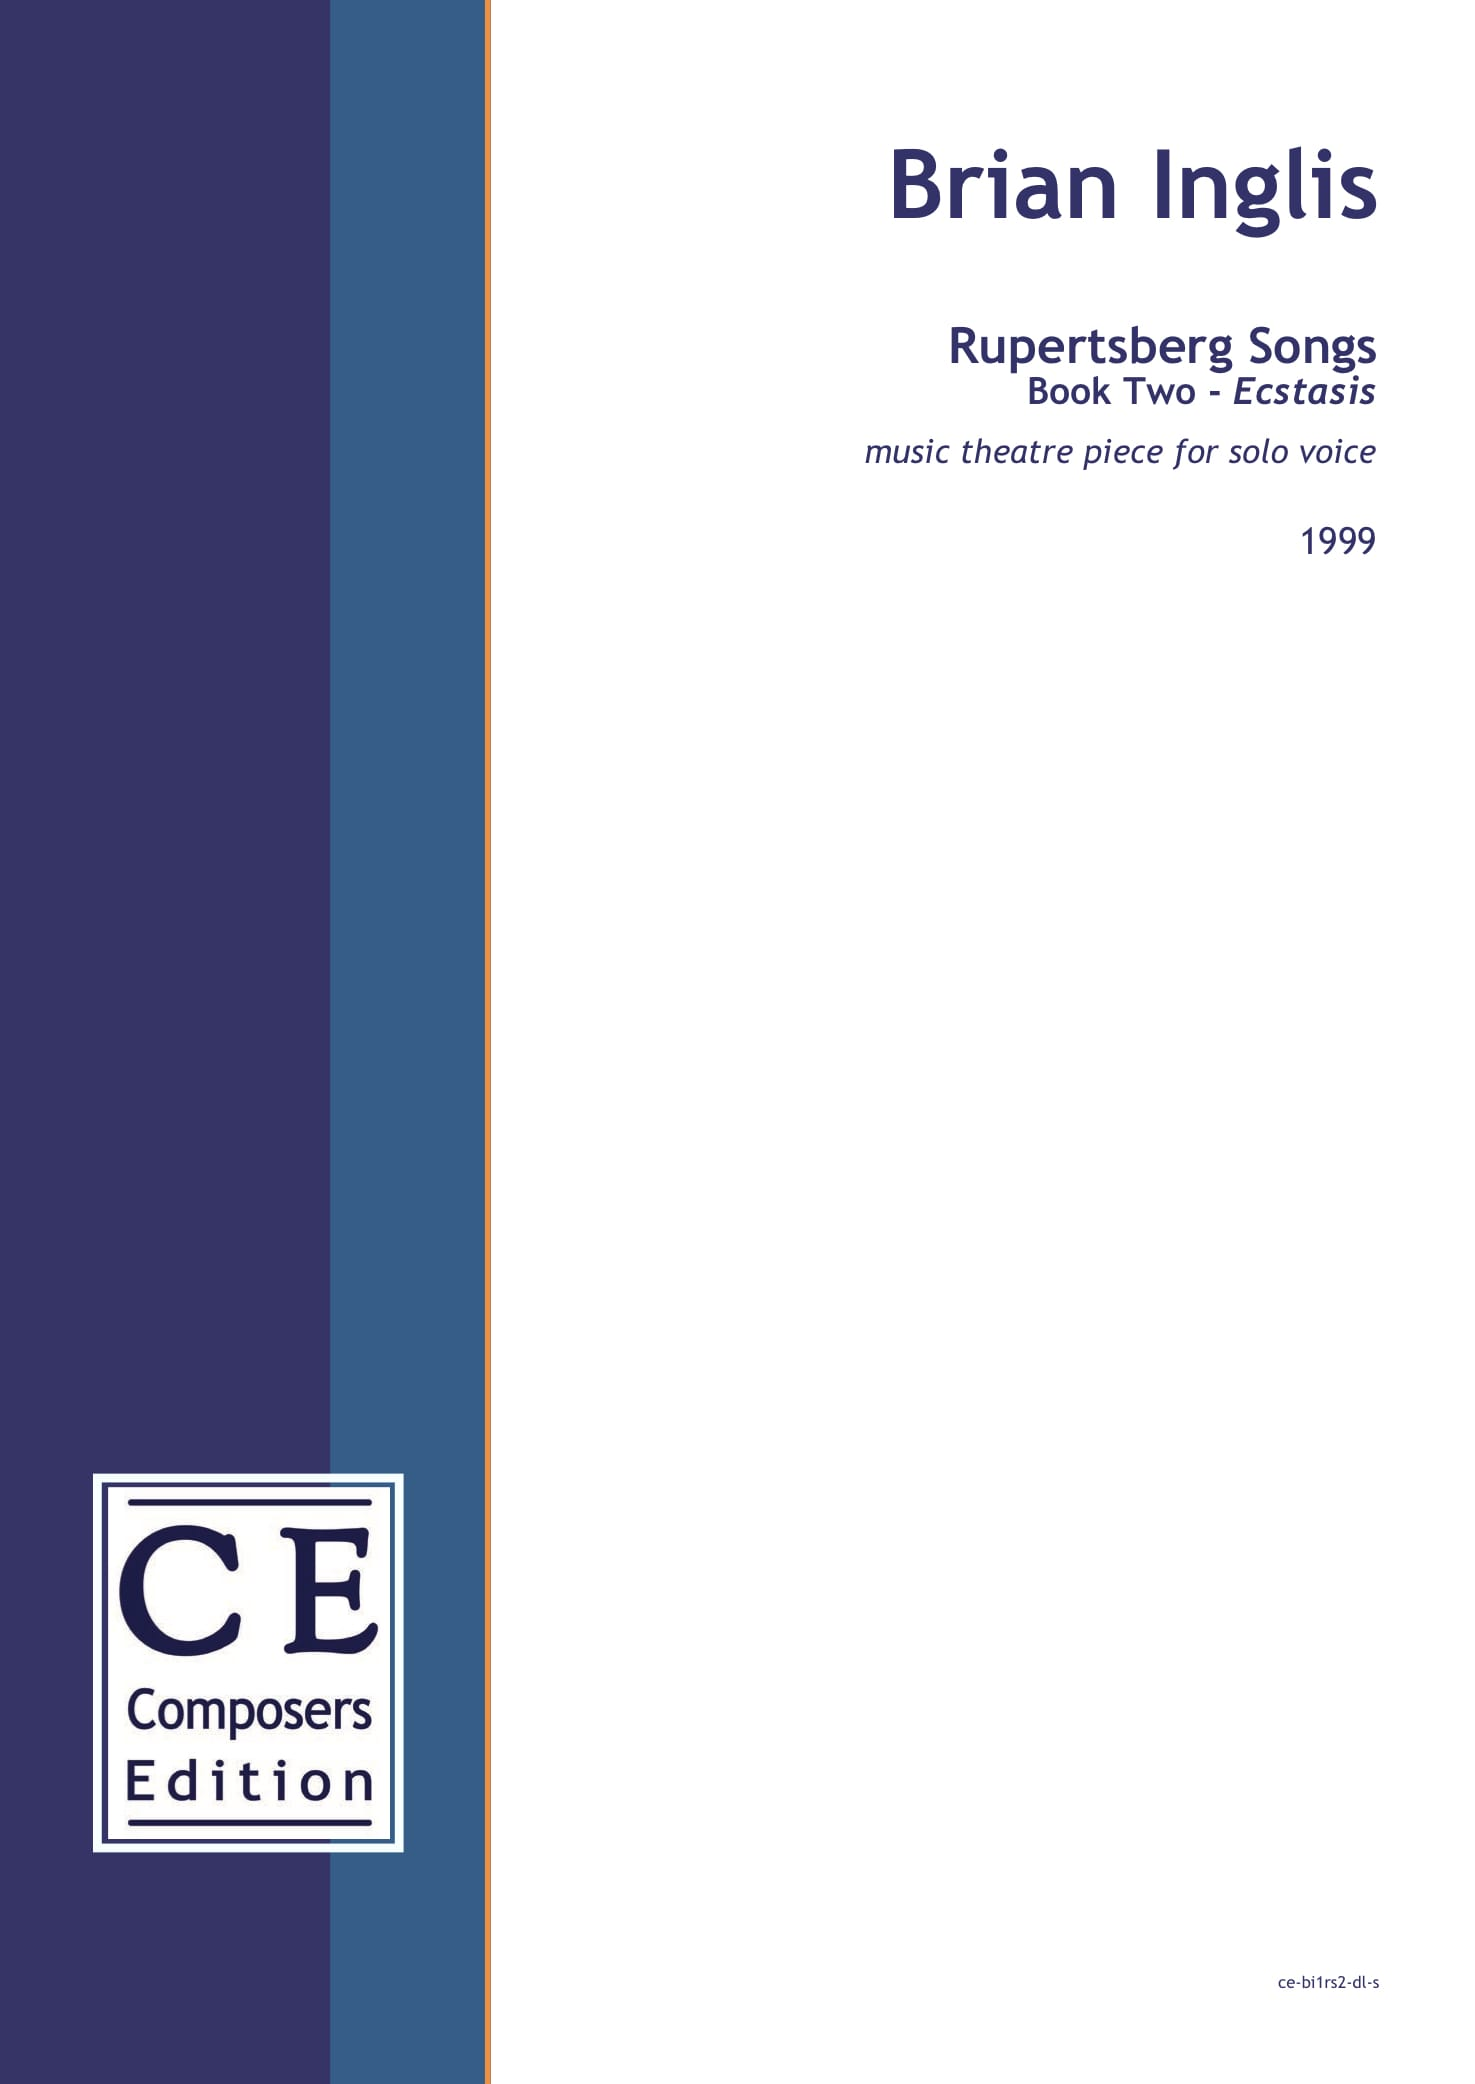 Brian Inglis: Rupertsberg Songs Book Two - Ecstasis music theatre piece for solo voice